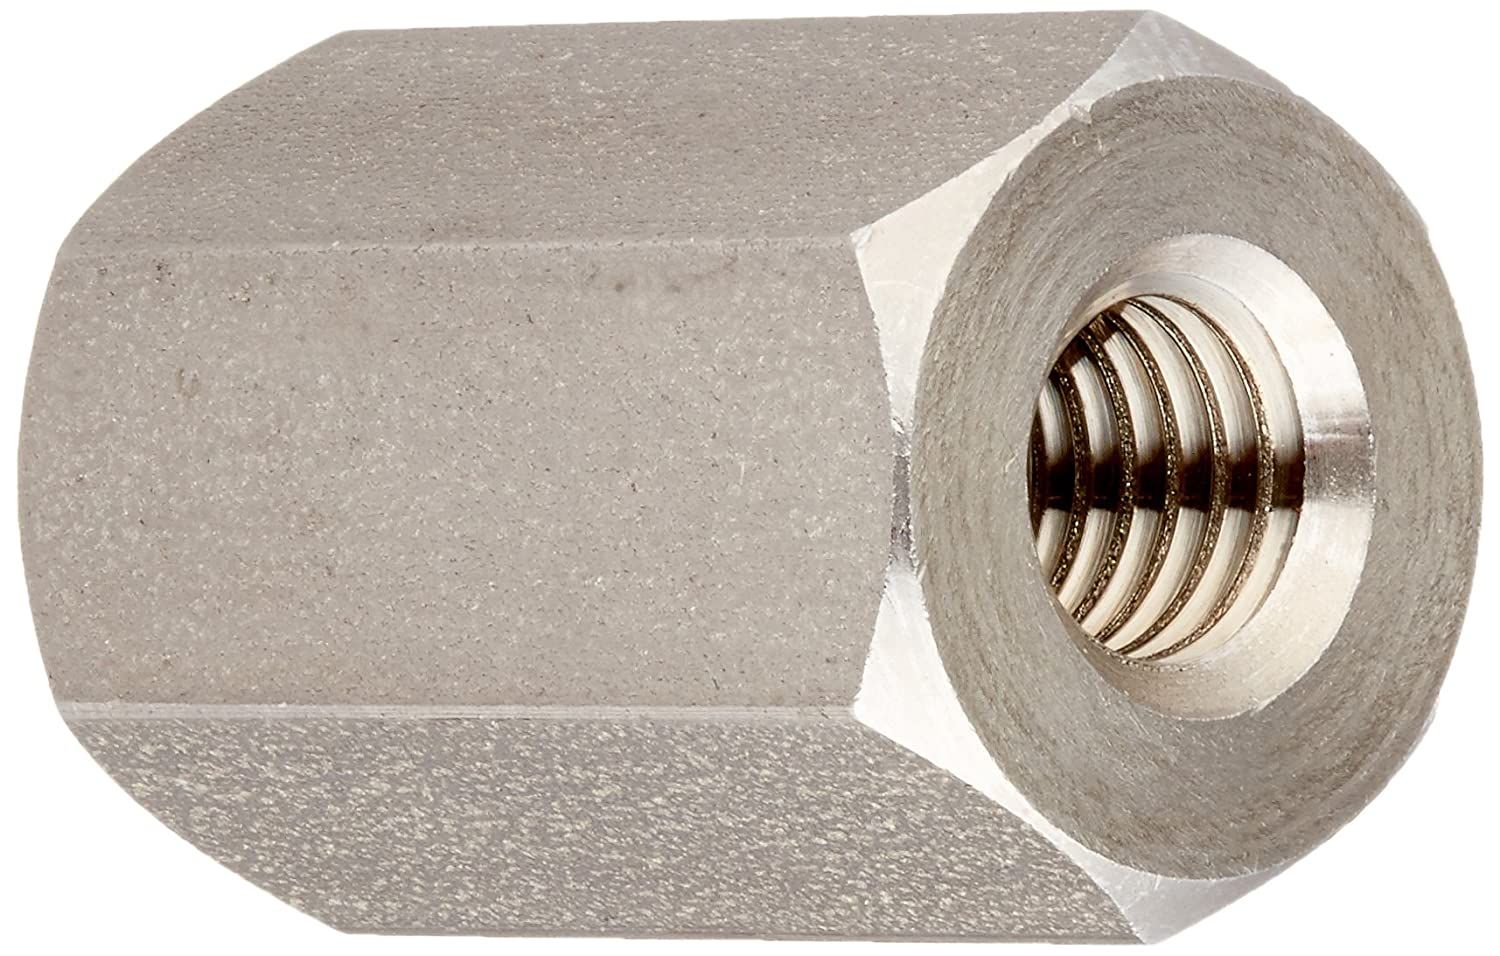 Pack of 10 Zinc Plated Female 25mm Length, 8mm OD Small Parts ST5085-4070-25.0-34 M4-0.7 Screw Size Steel Lyn-Tron